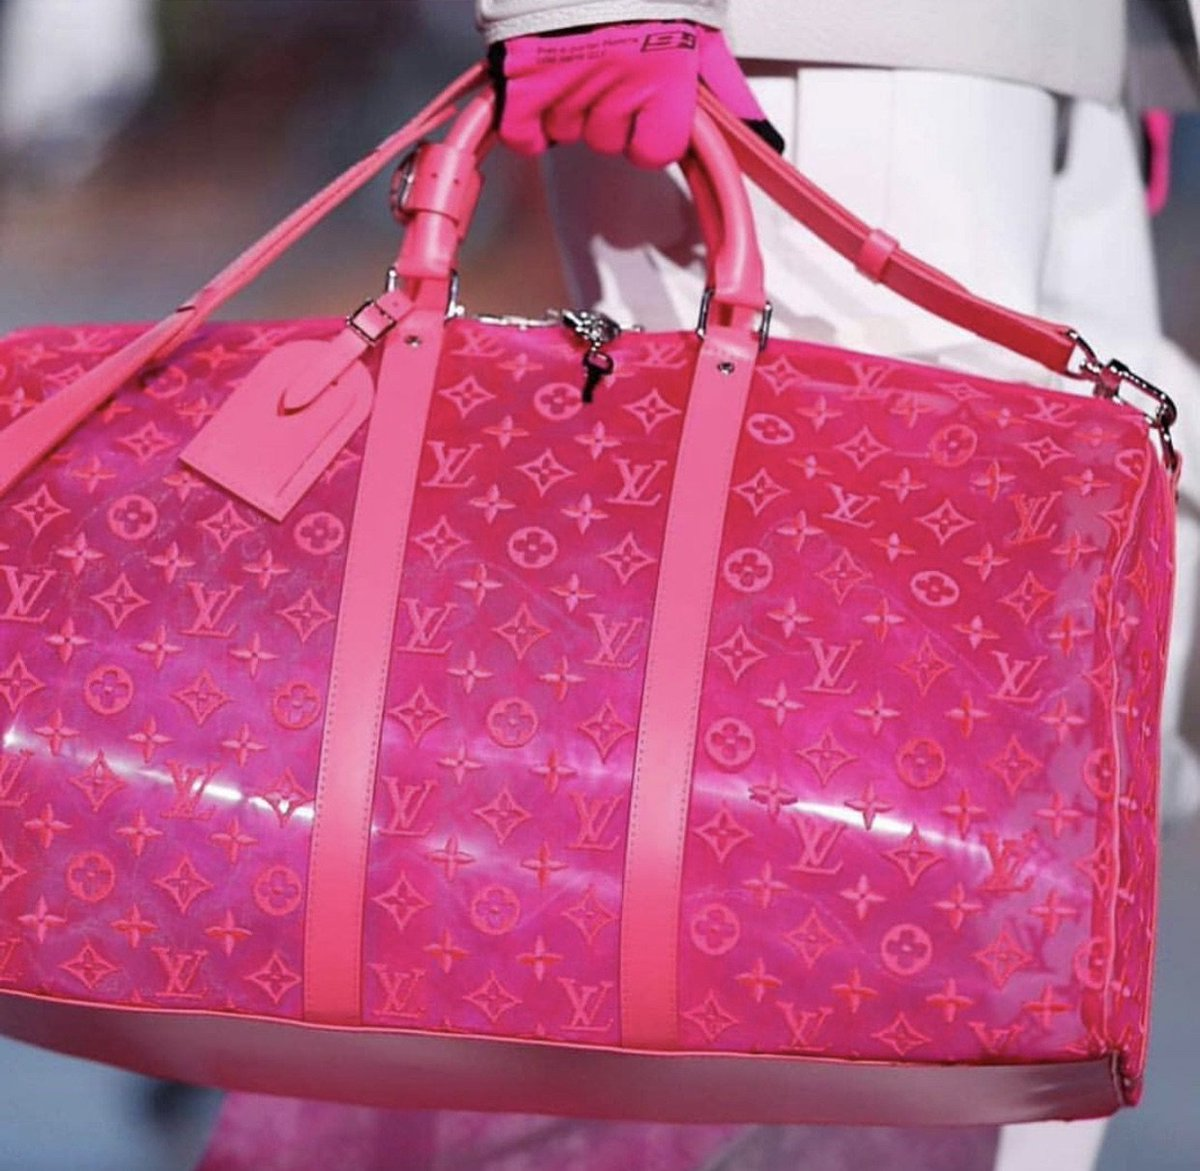 It's not a want, it's a need... 💋 @LouisVuitton